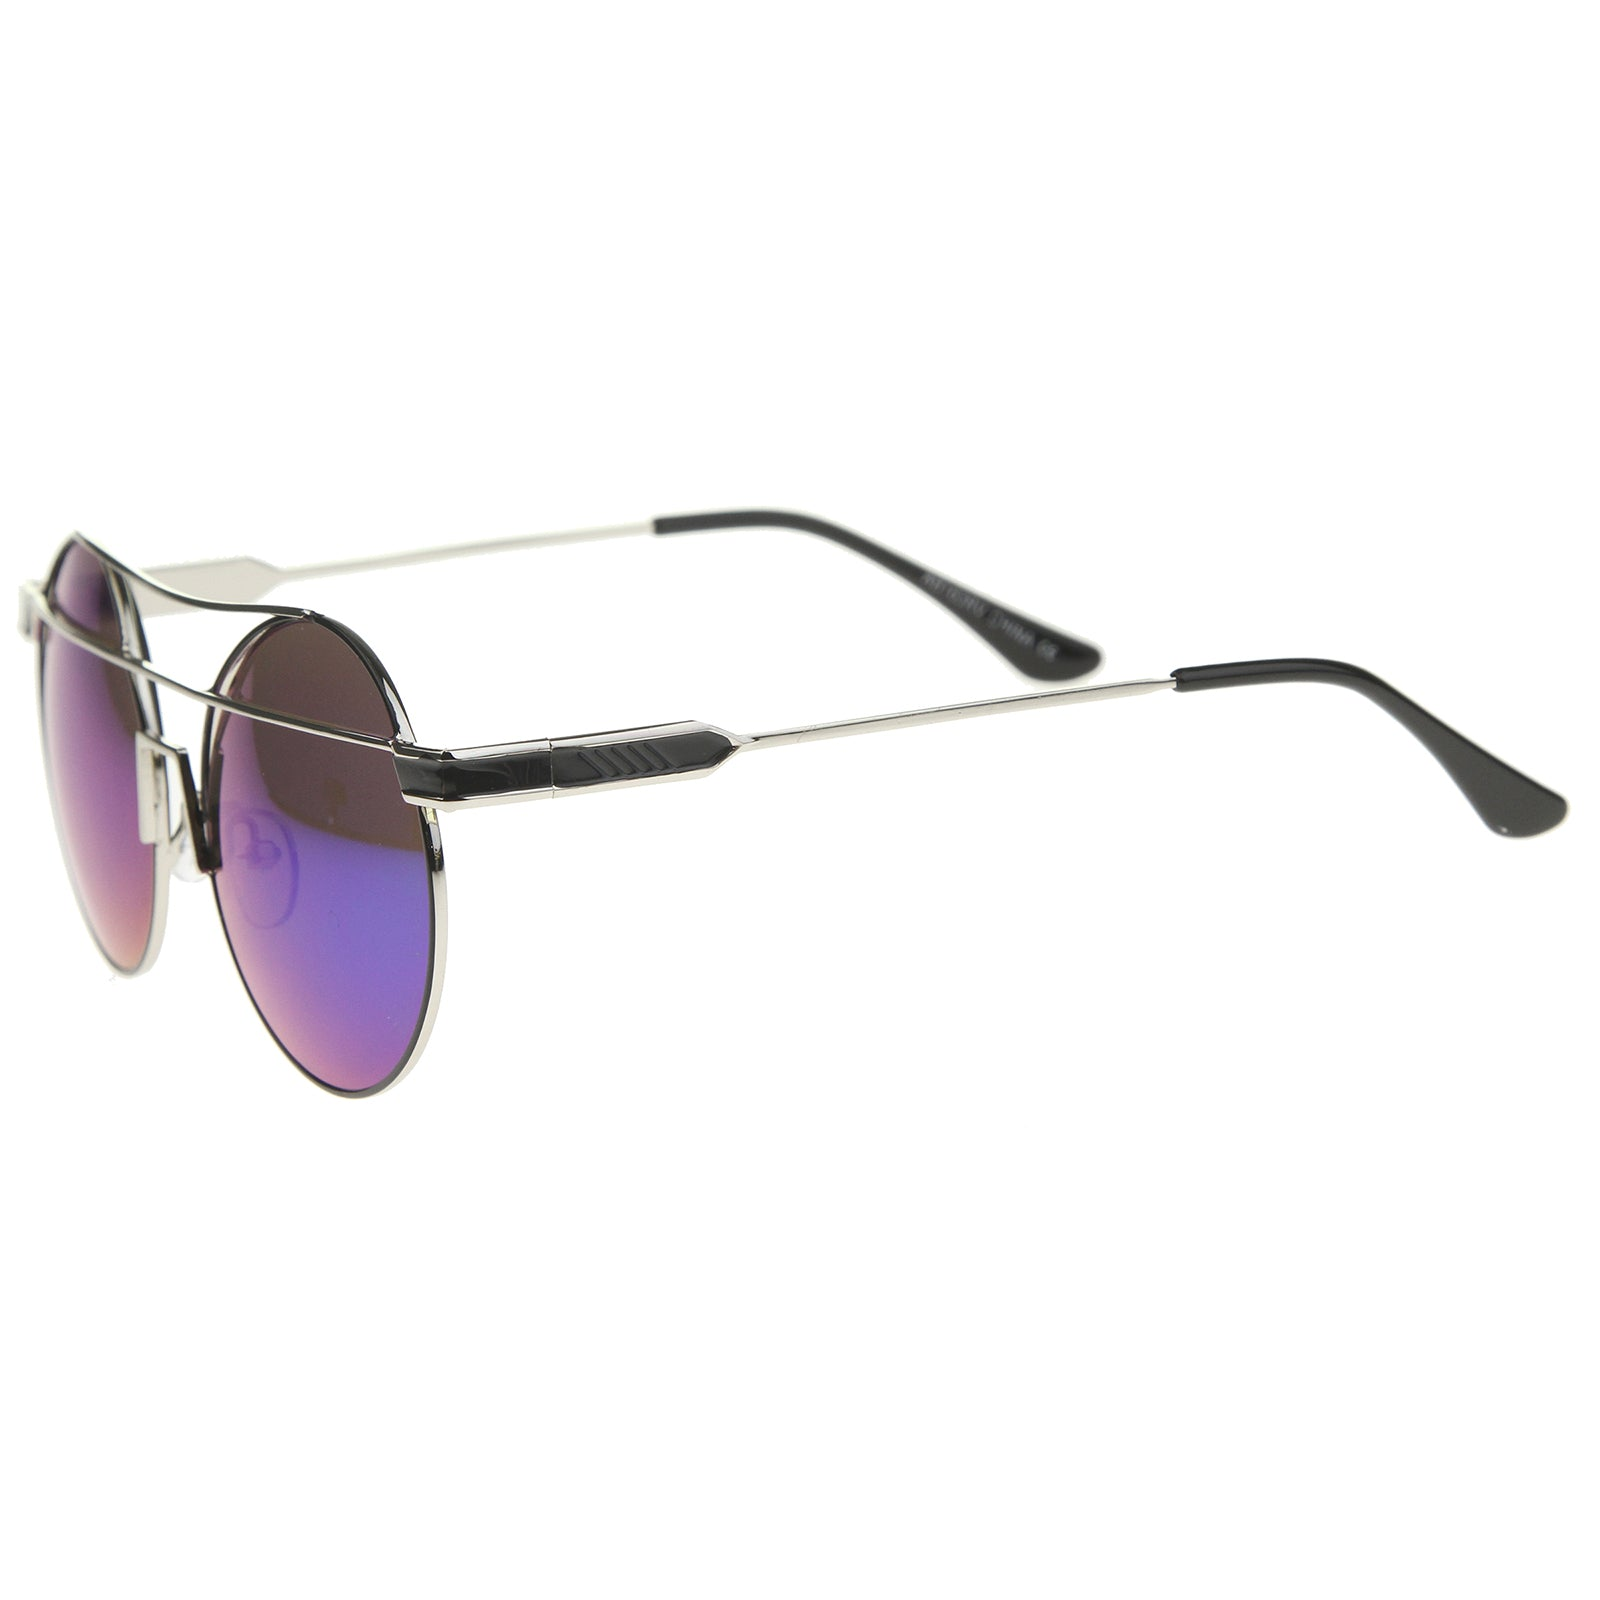 Modern Metal Frame Double Bridge Colored Mirror Lens Round Sunglasses 59mm - sunglass.la - 15